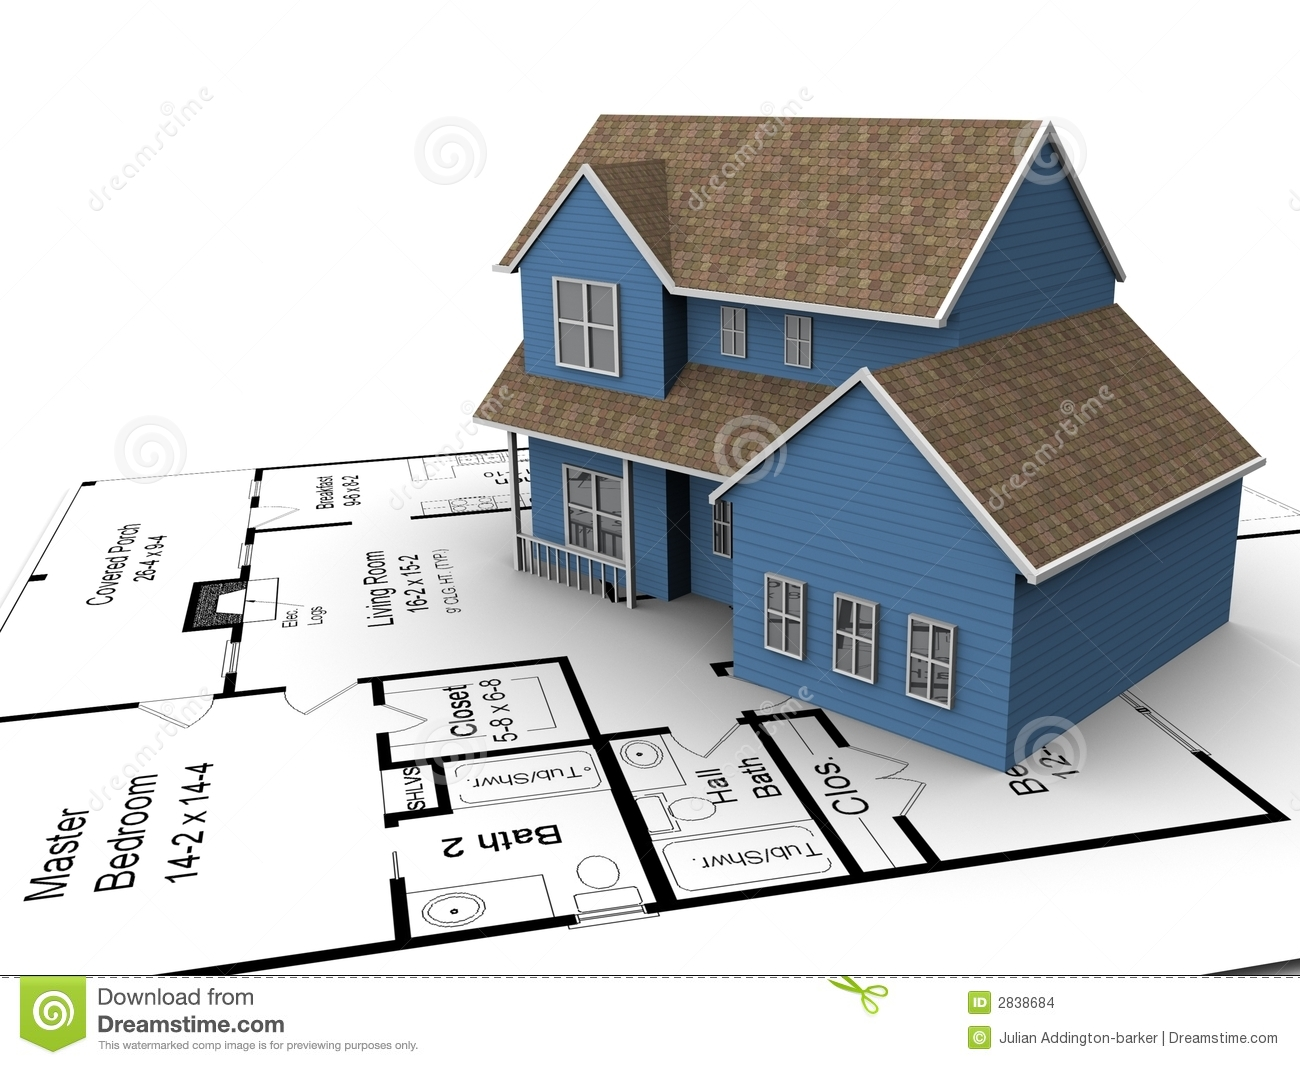 New house plans stock illustration image of design for Latest building plans